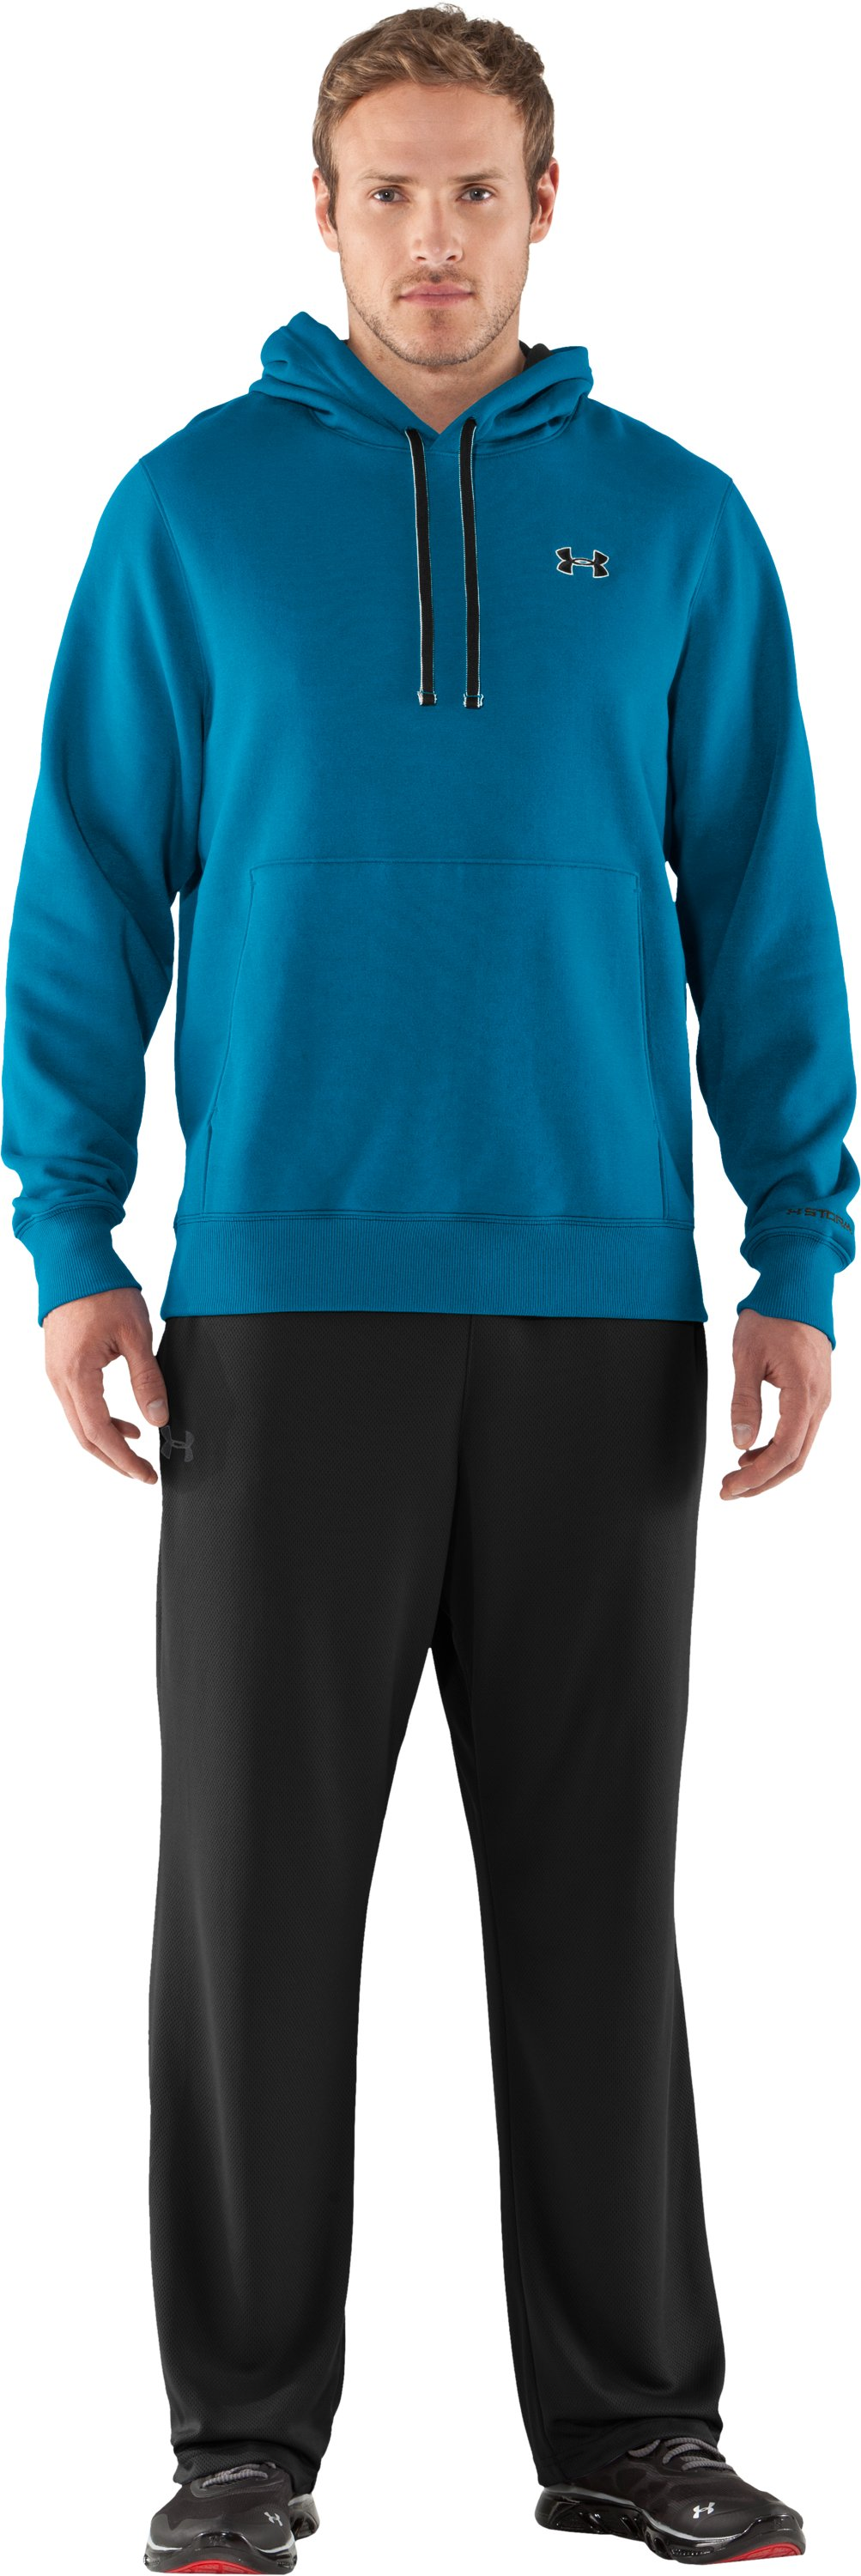 Men's Charged Cotton® Storm Transit Hoodie, SNORKEL, zoomed image